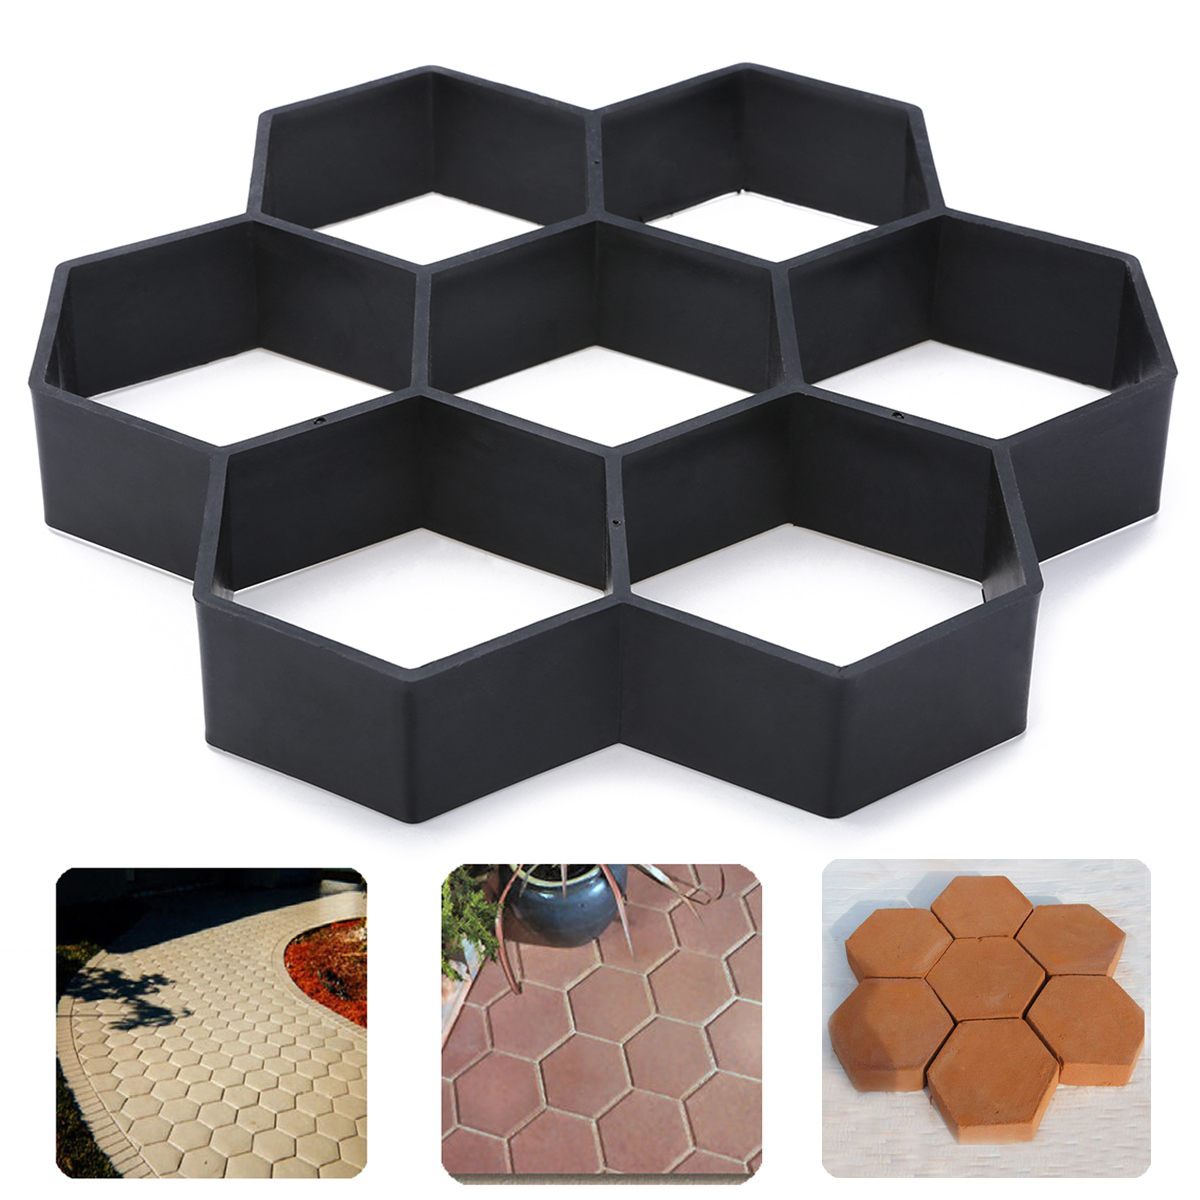 Black Plastic Driveway Paving Stone Mold Concrete Stepping Pathmate Pavement Mould Paver